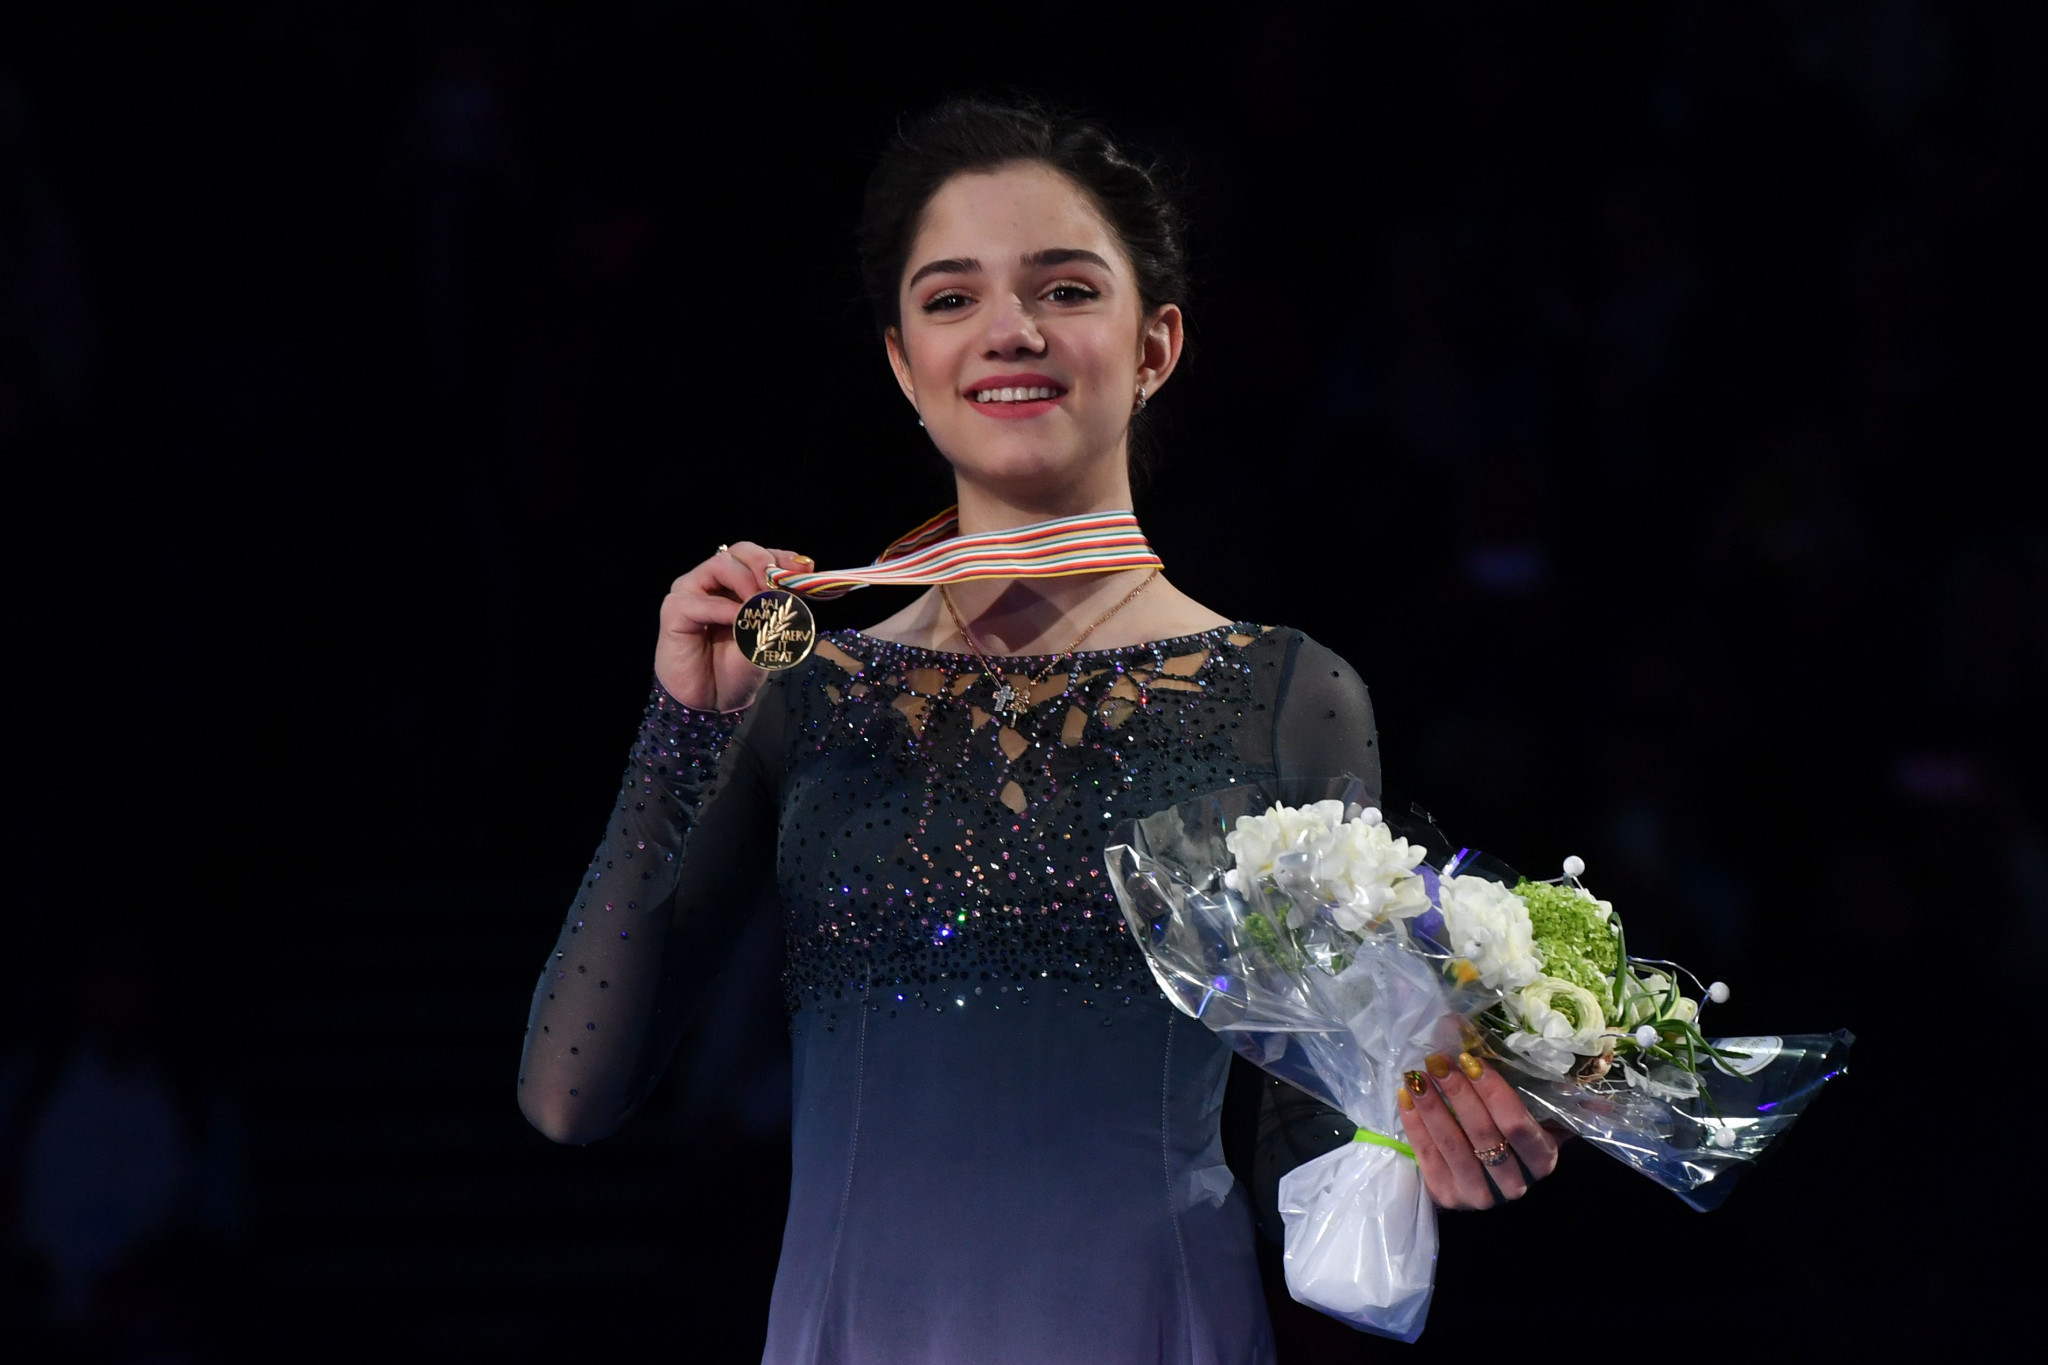 Russia's Evgenia Medvedeva is to return to competitive figure skating after sustaining an injury in October ©Getty Images